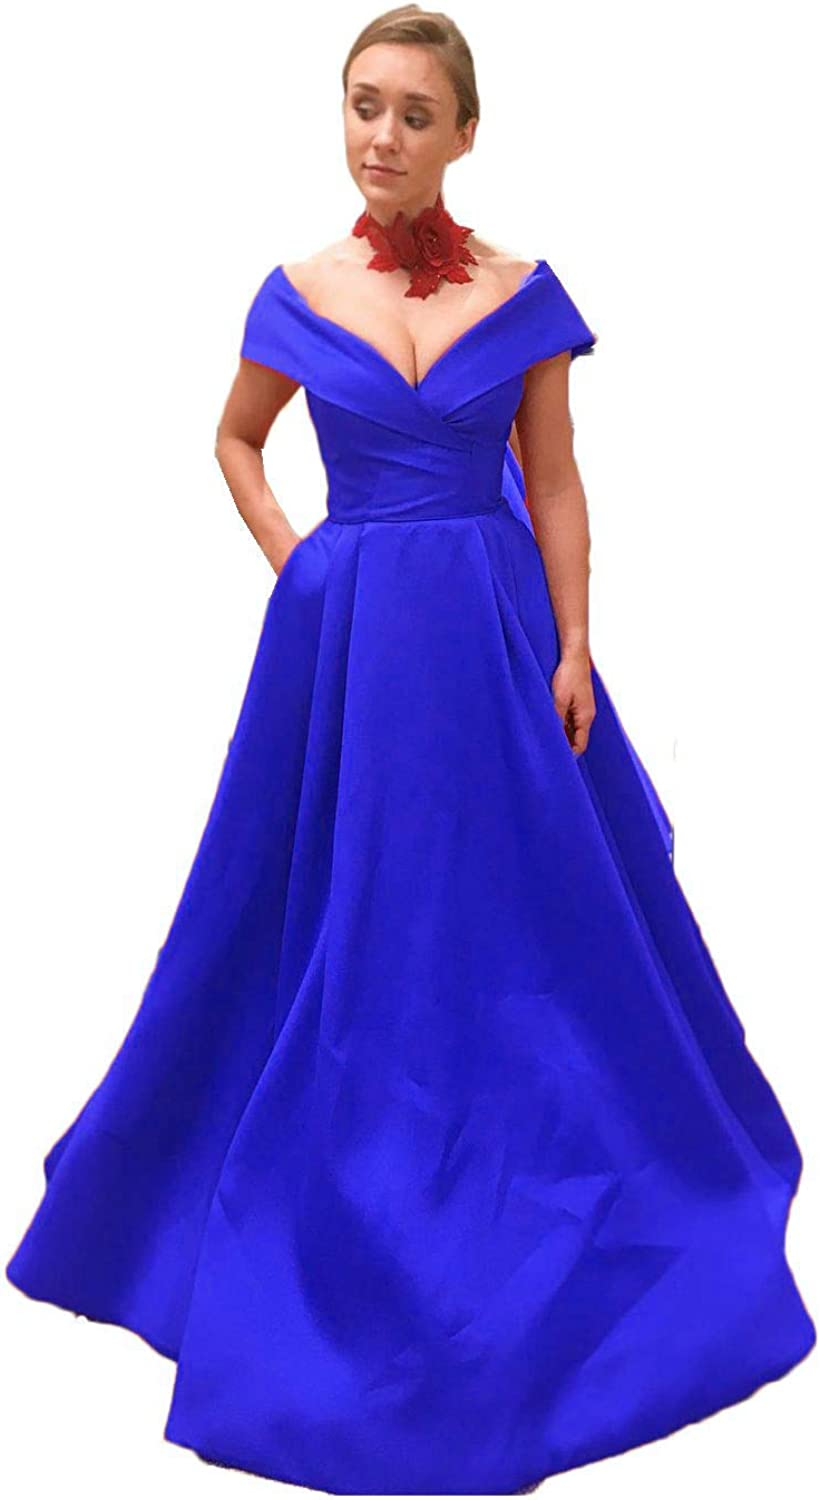 Jdress Women's Long Satin Off The Shoulder Prom Dress A Line Evening Formal Gowns with Pockets